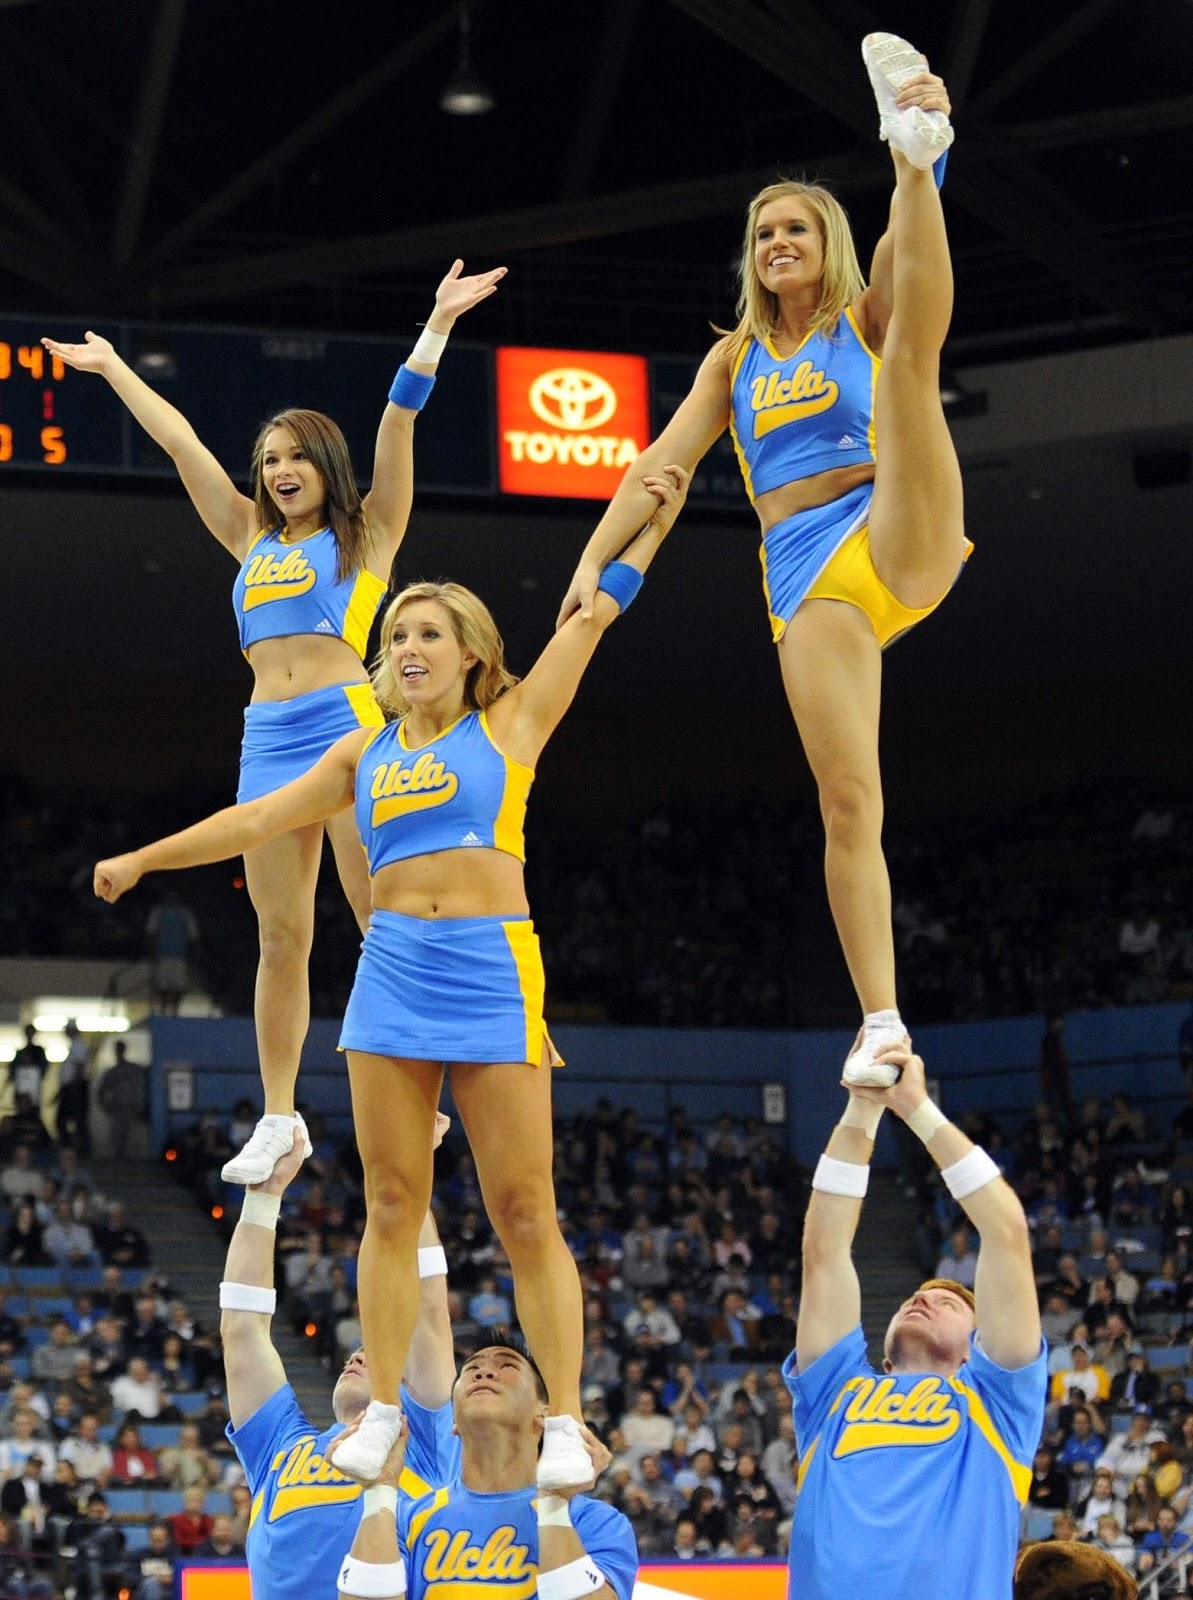 High School Cheerleaders Wardrobe Malfunction